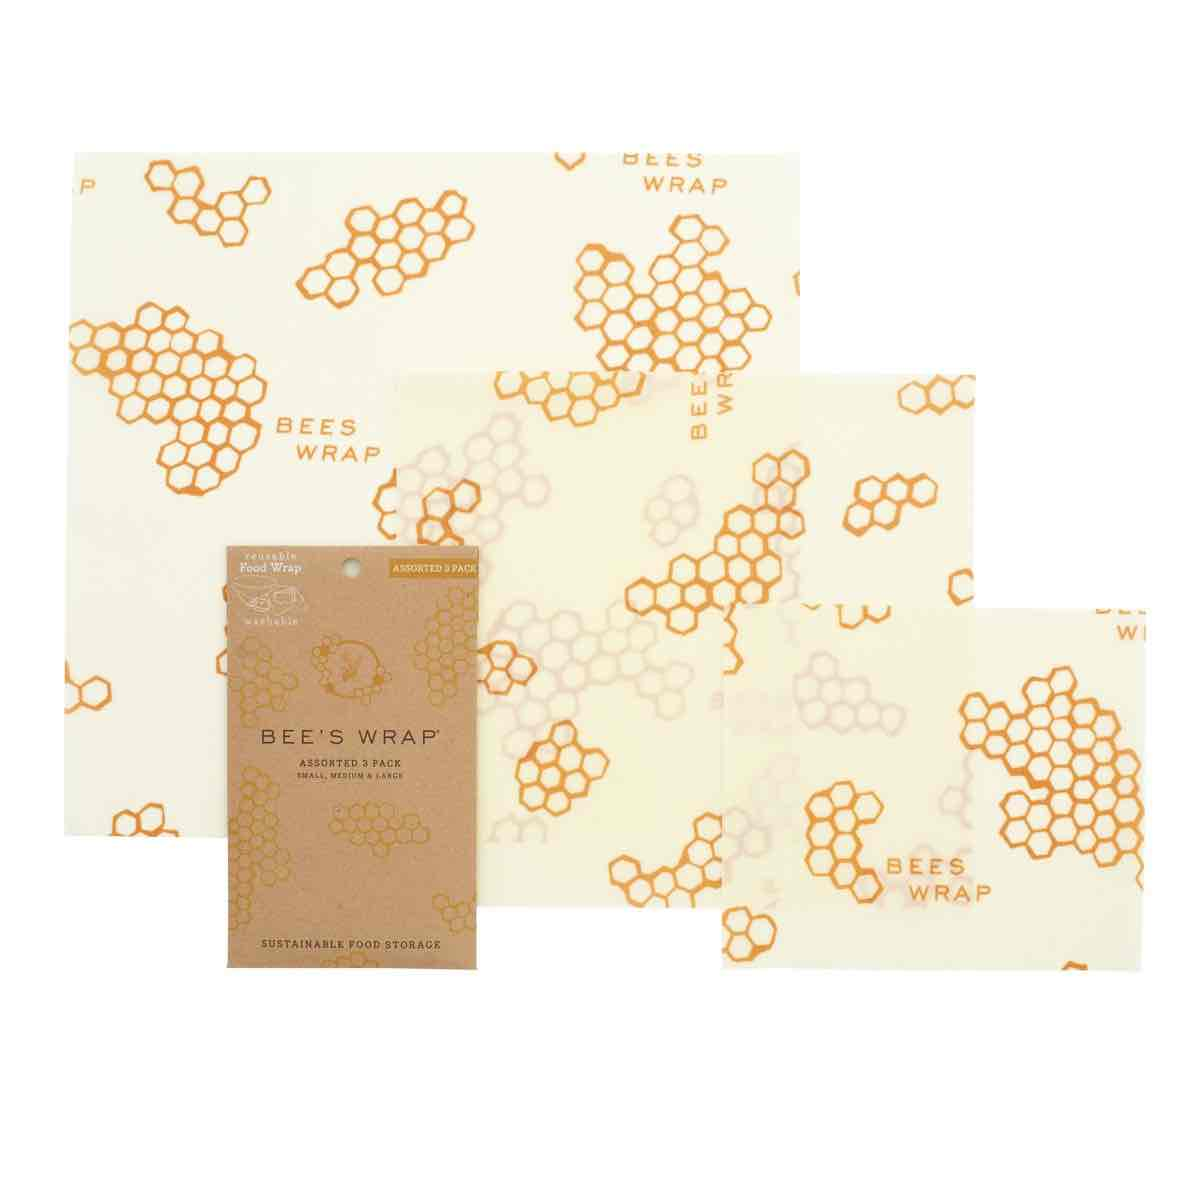 Bee's Wrap Reusable Wraps | Set of 3 assorted